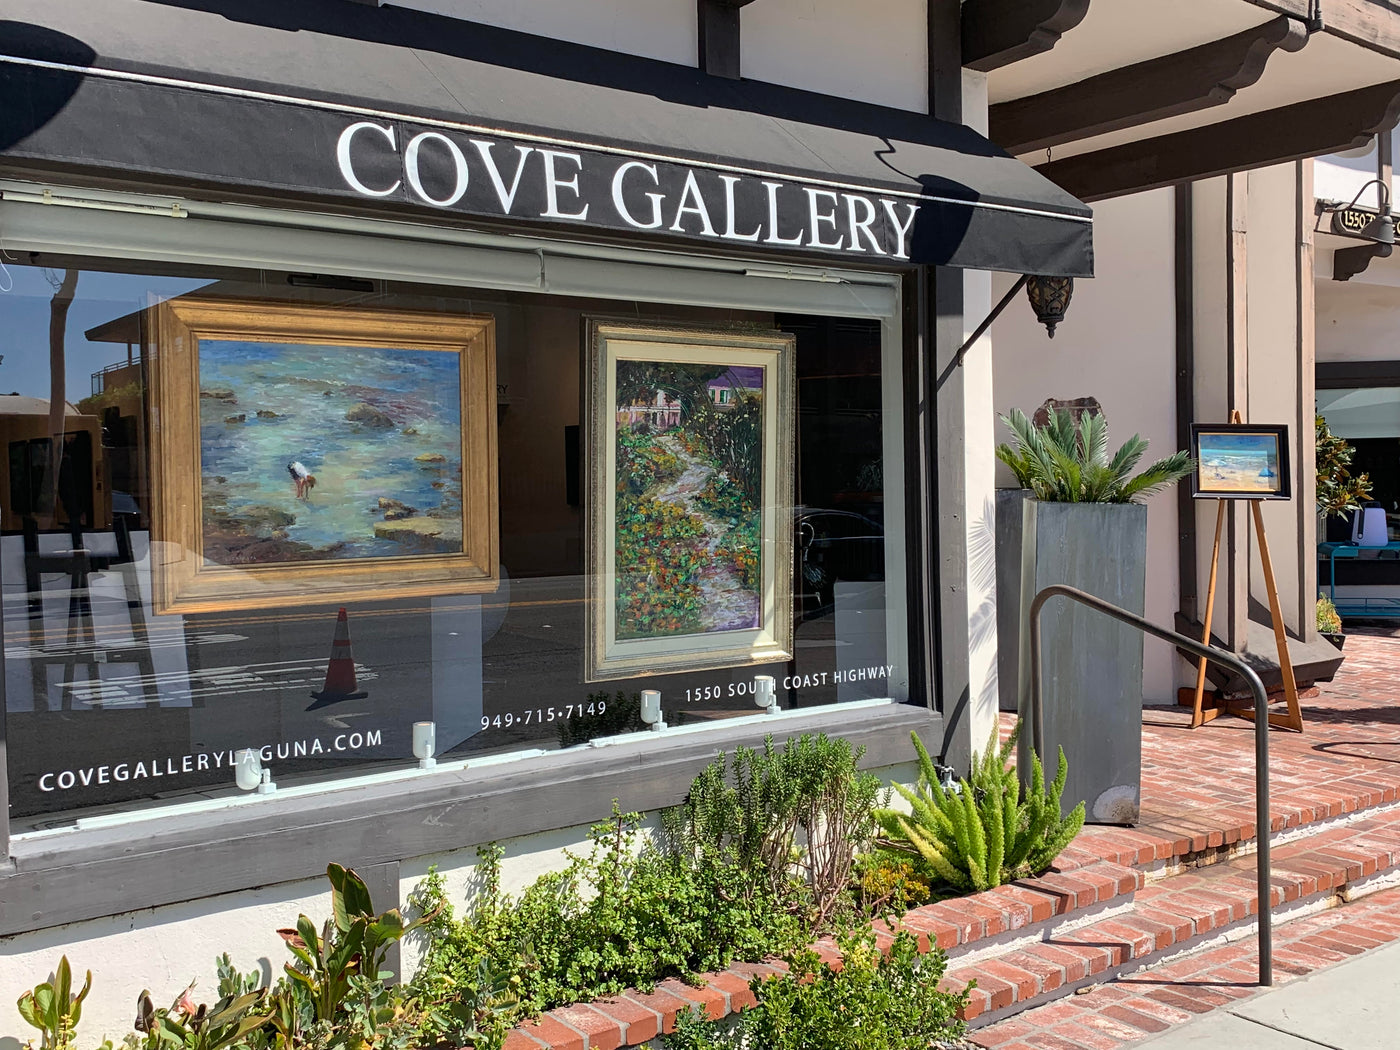 Joining Cove Gallery Laguna Beach